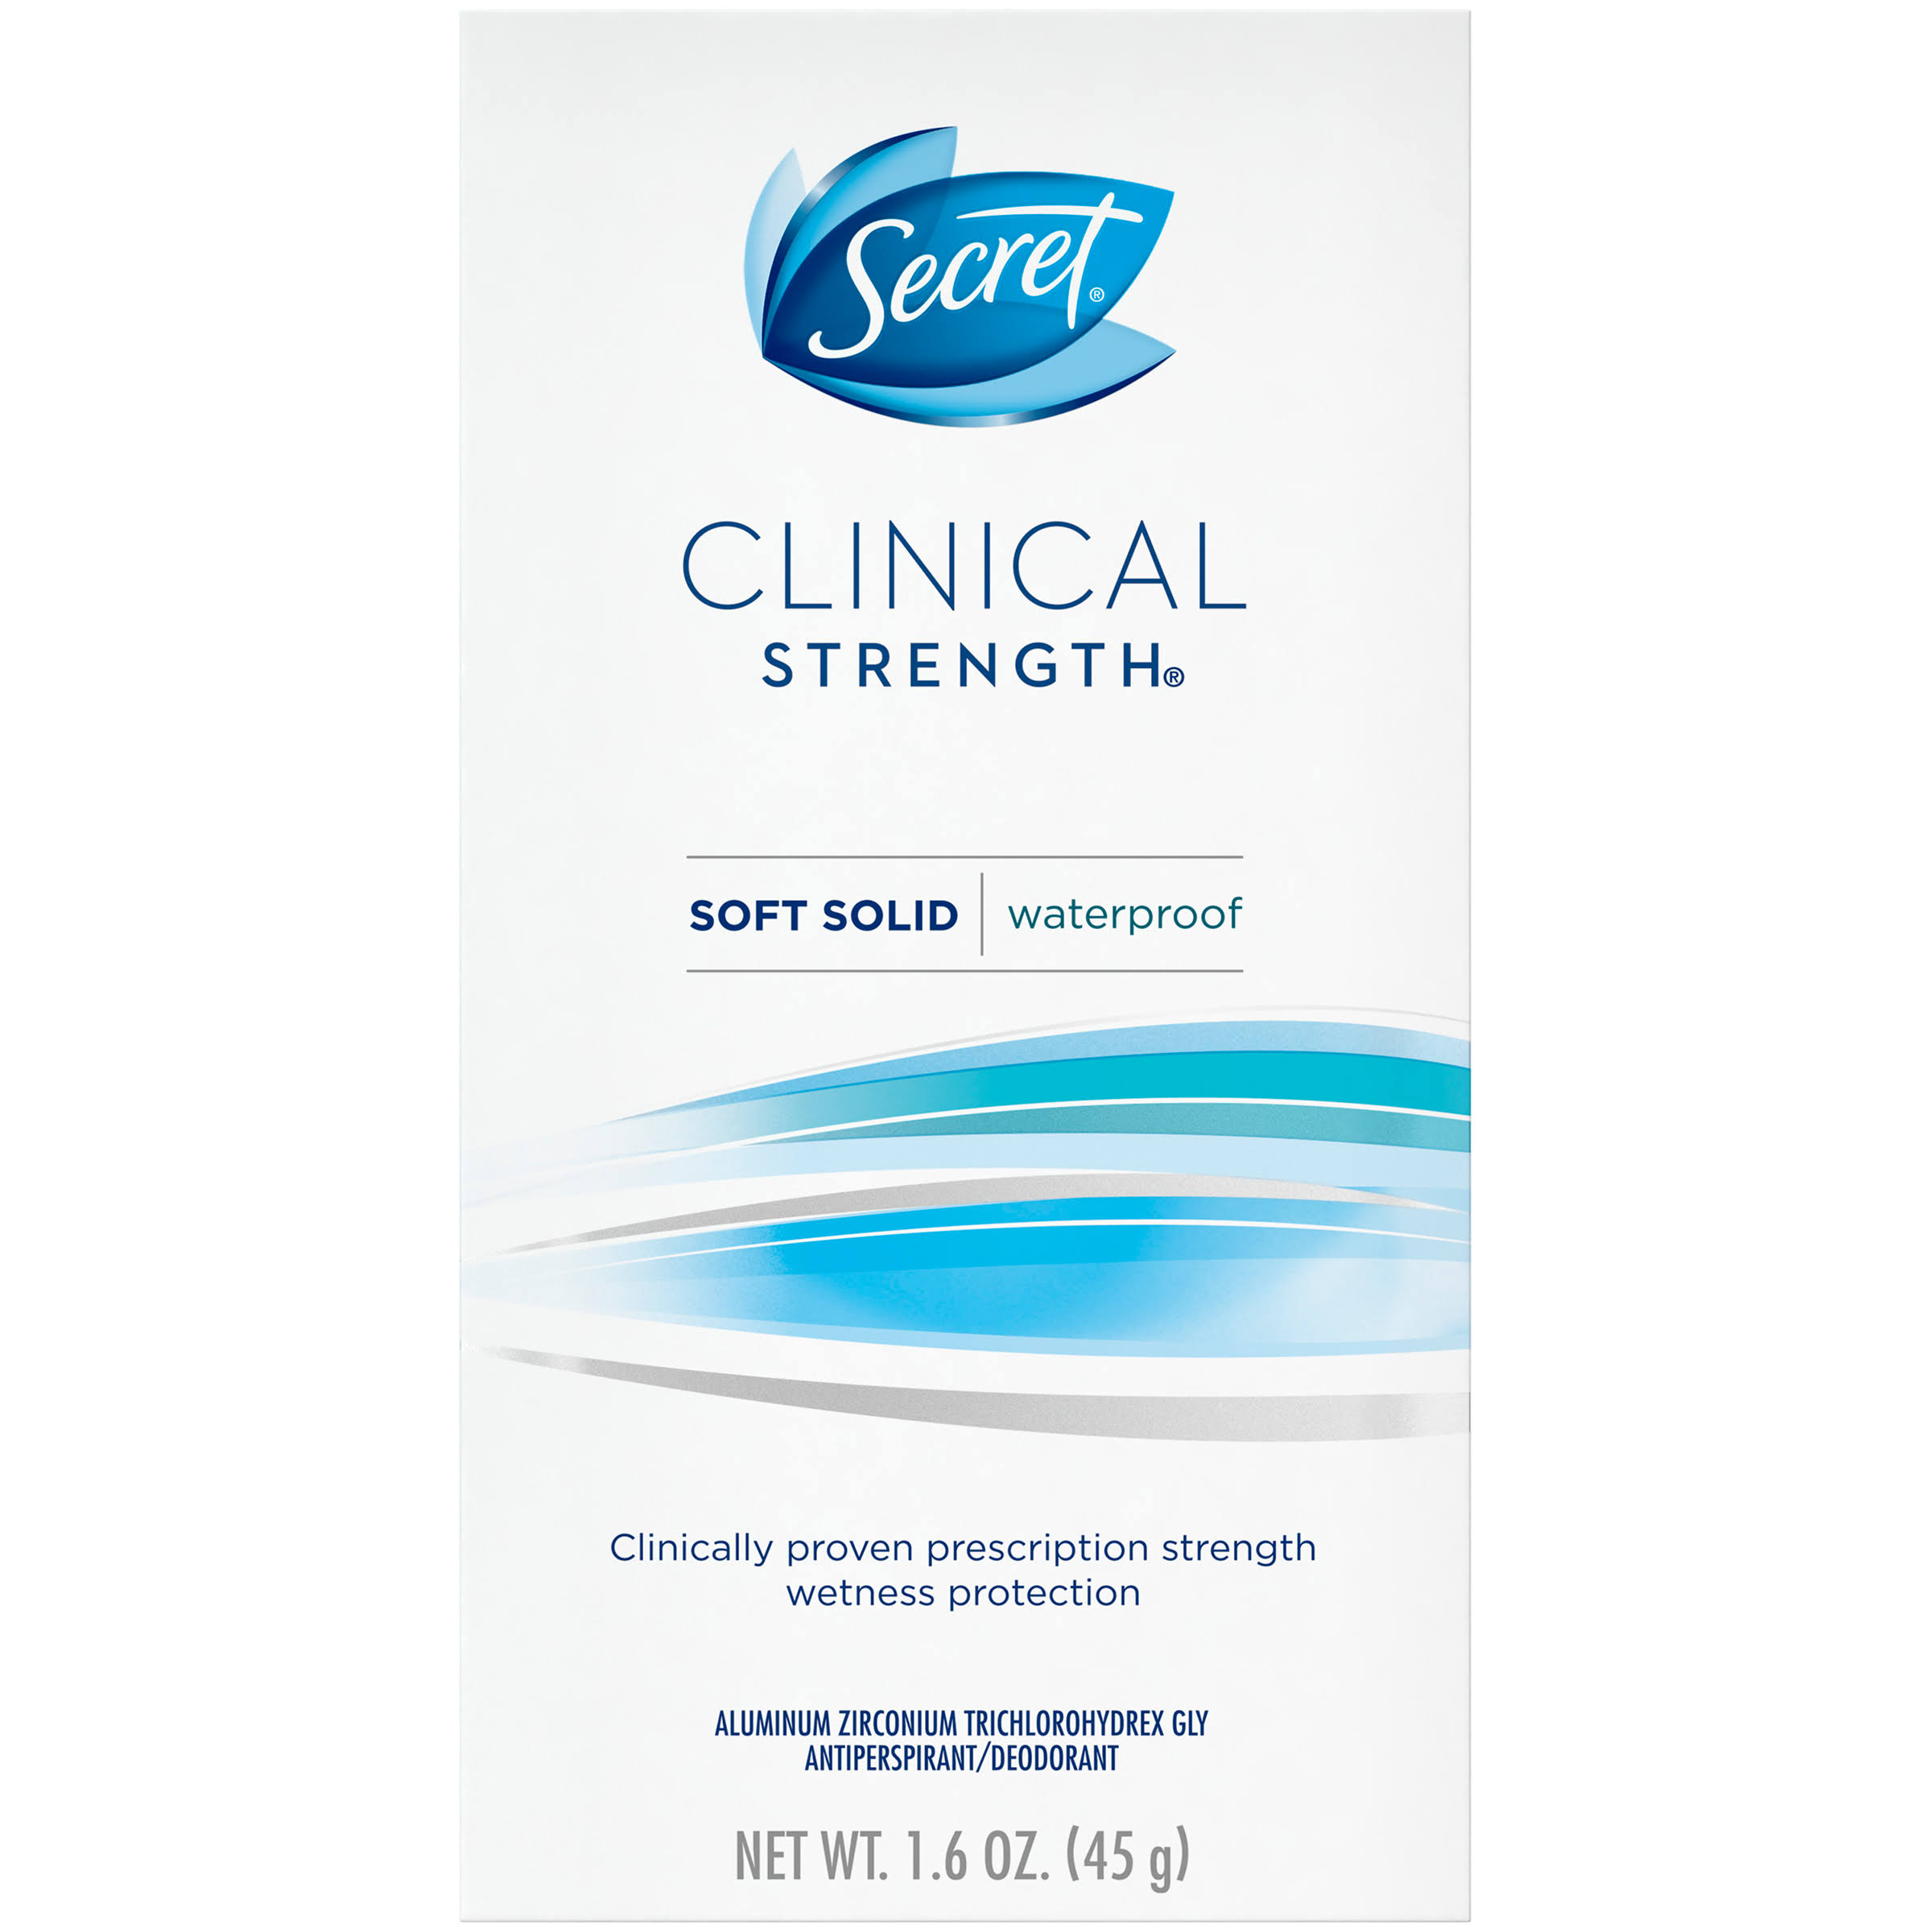 Secret Clinical Strength Deodorant - Smooth Solid Waterproof, 1.6oz